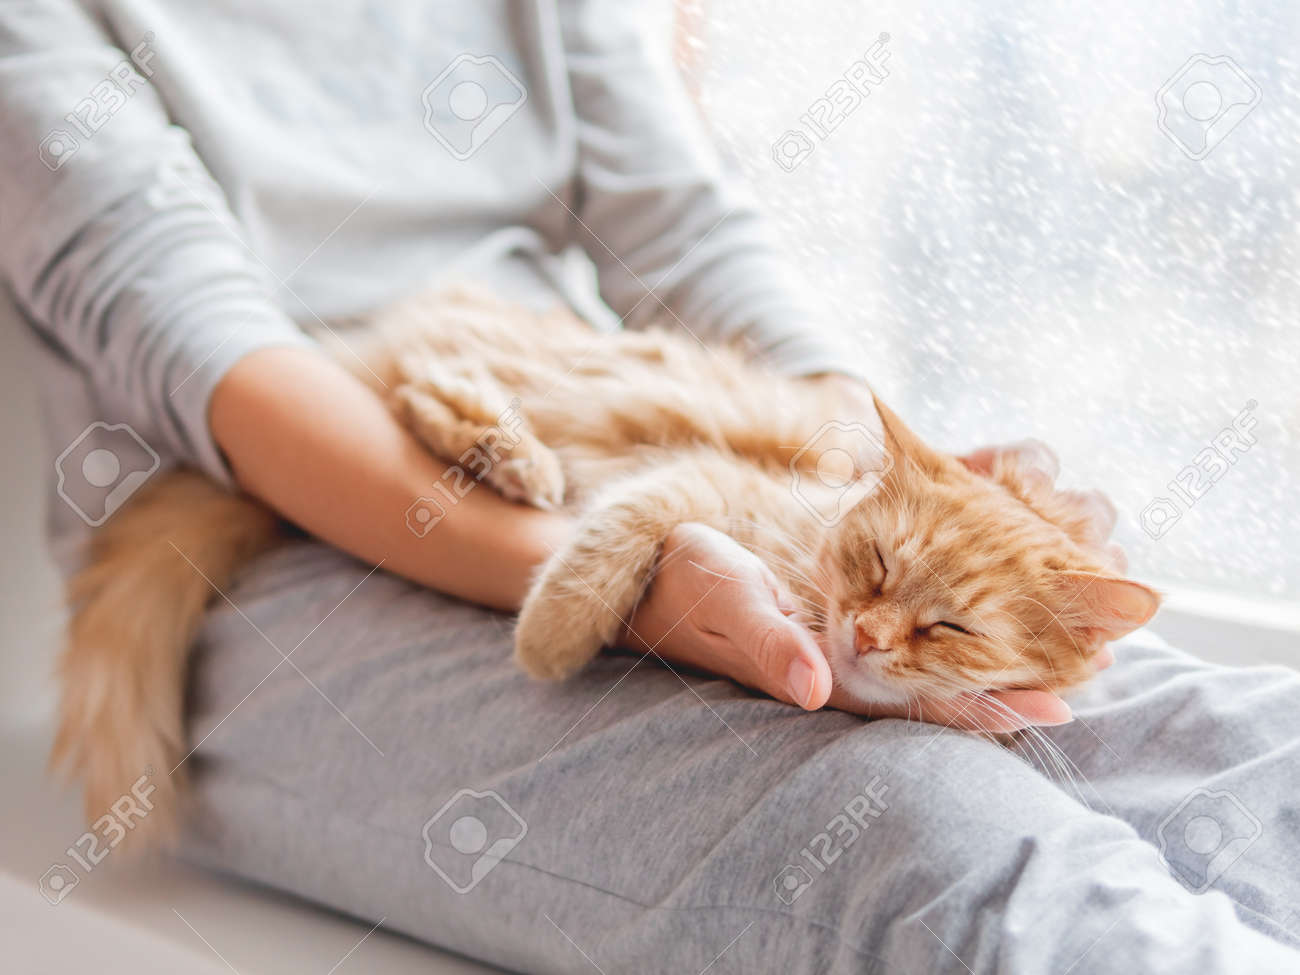 Cute ginger cat lying on woman's knees. Woman in gray pajama strokes fluffy pet. Cozy morning at home while snow is falling outside. - 151929764